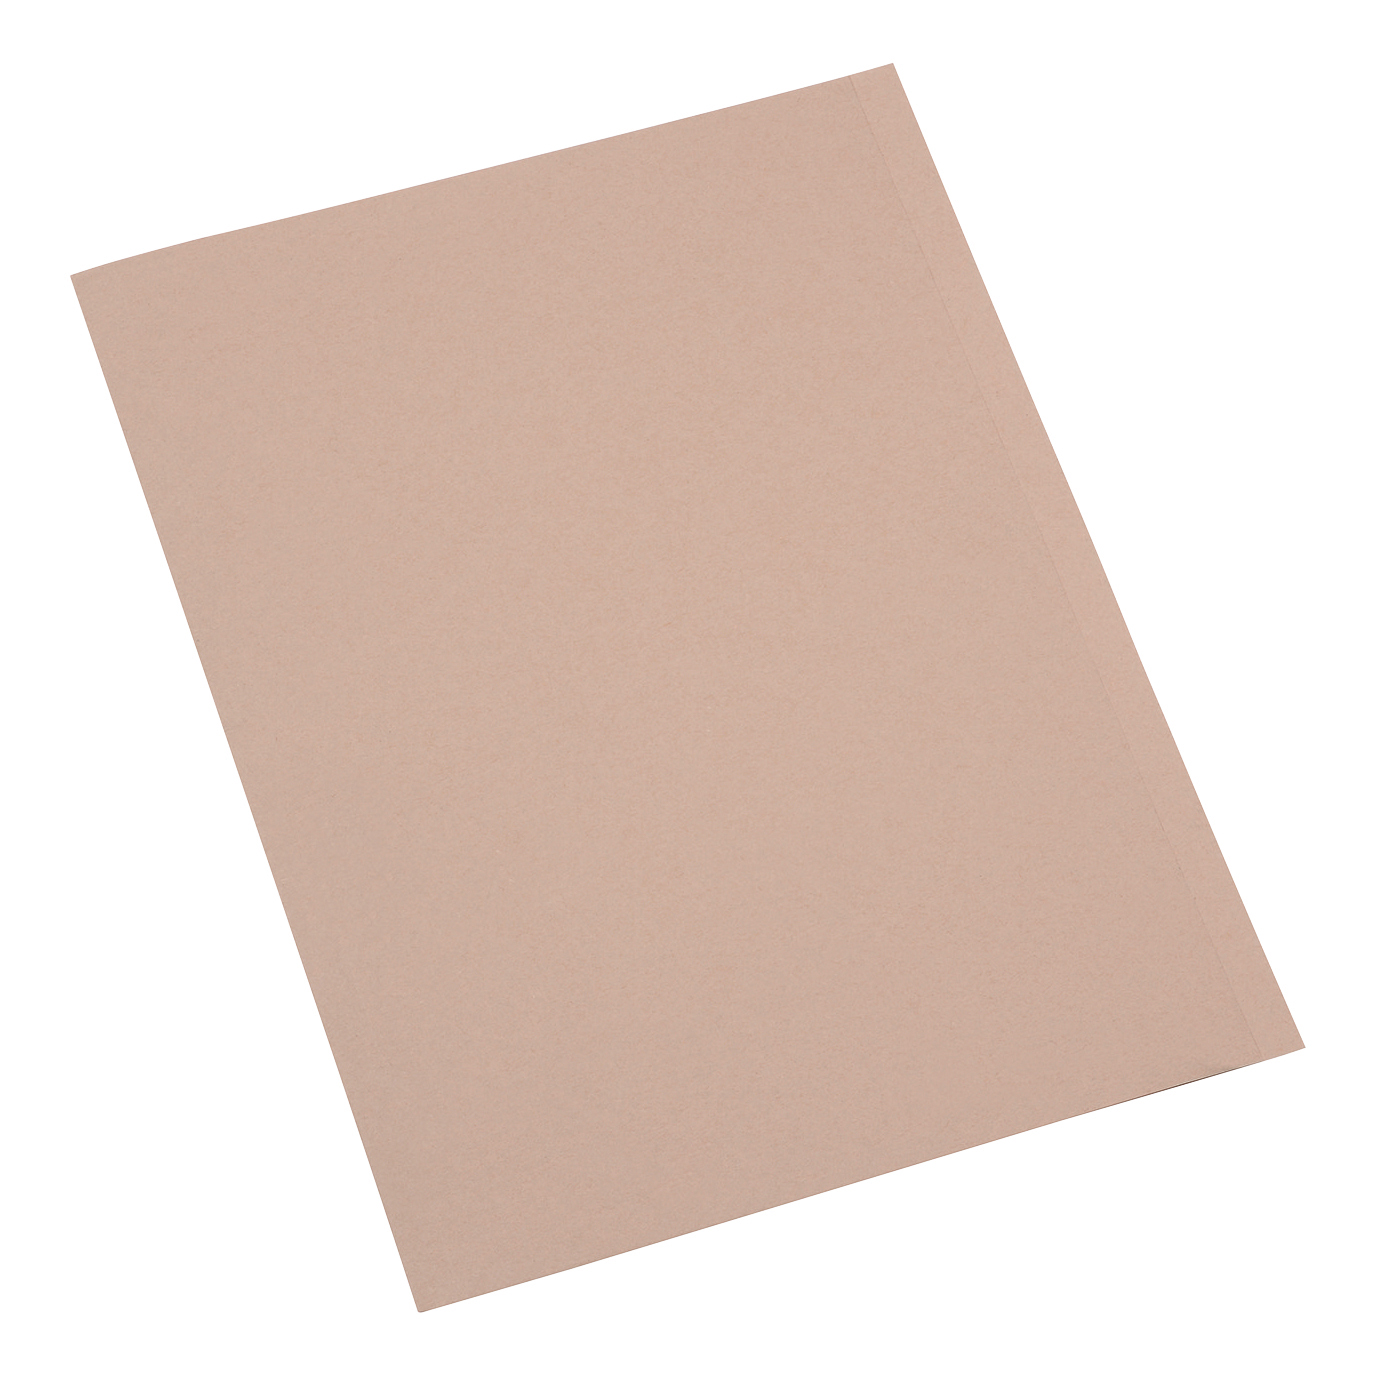 5 Star Office Square Cut Folder Recycled 250gsm A4 Buff [Pack 100]